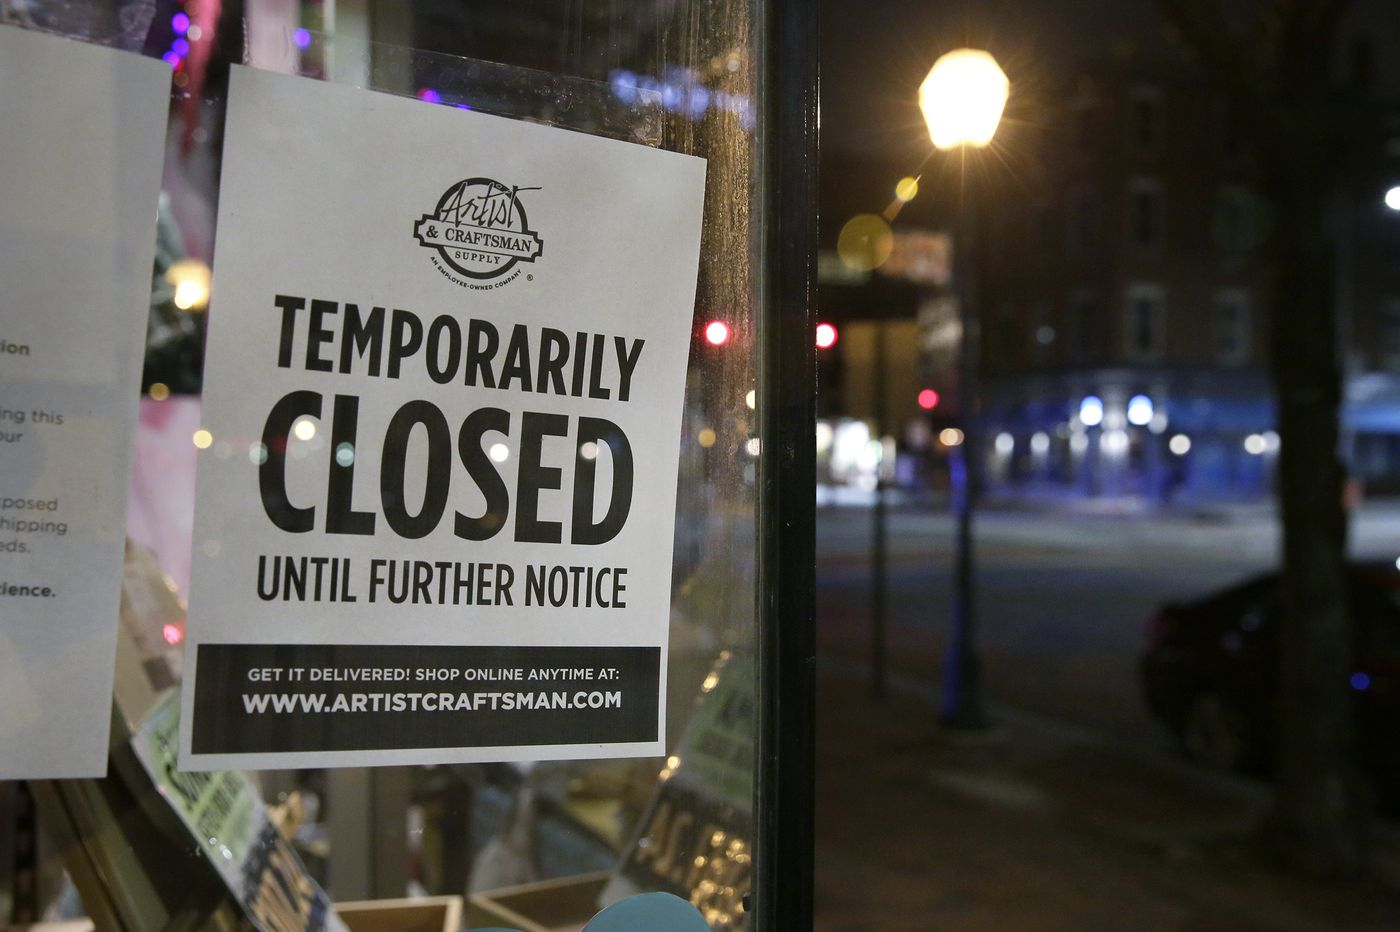 Gov. Wolf's shutdown order sows widespread confusion and panic. Up to 3 million workers affected